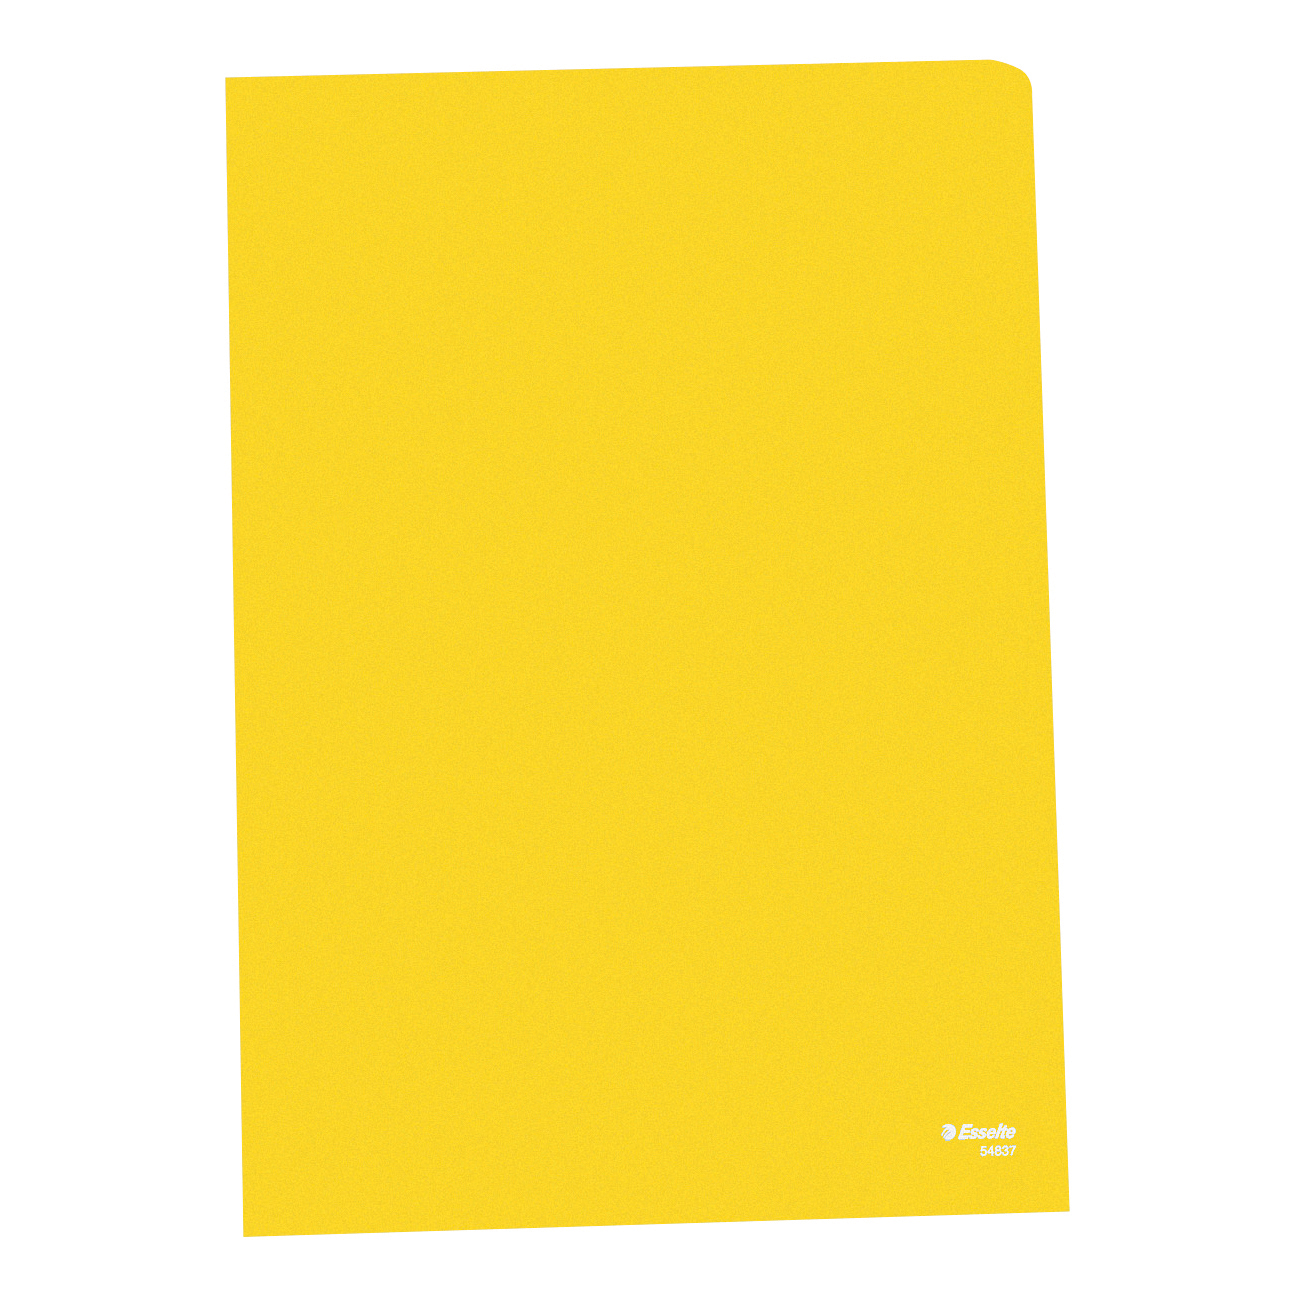 Esselte Copy-safe Folder Plastic Cut Flush A4 Yellow Ref 54842 Pack 100